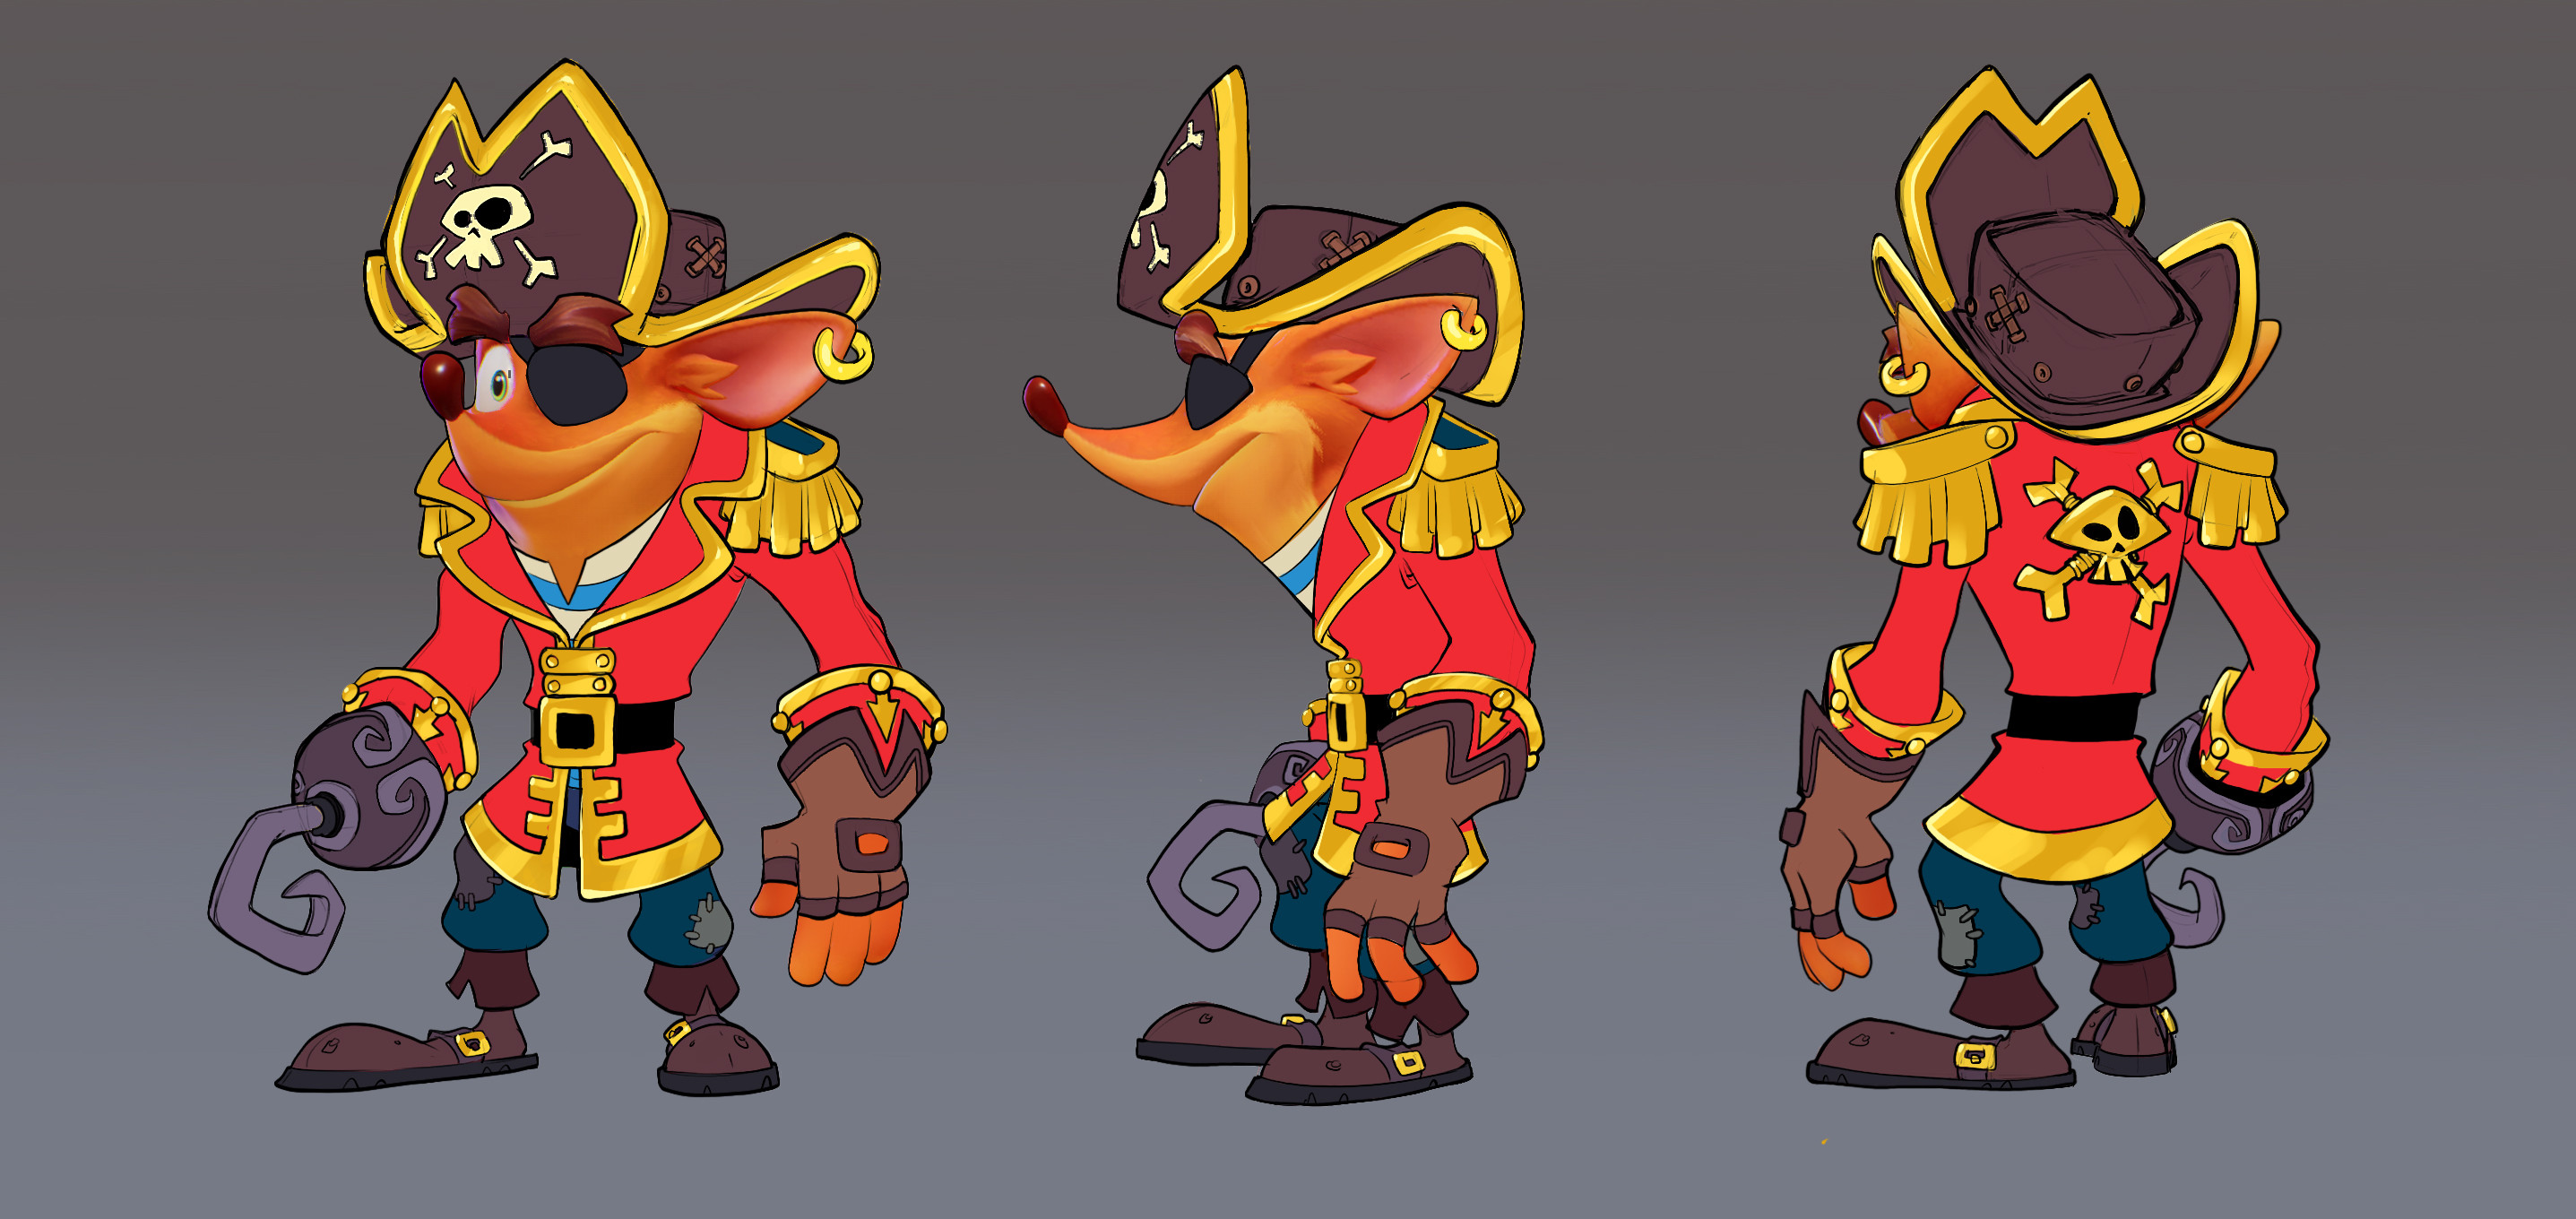 Final Crash Pirate Skin Concept: Minimal rendering requested due to time constraints.